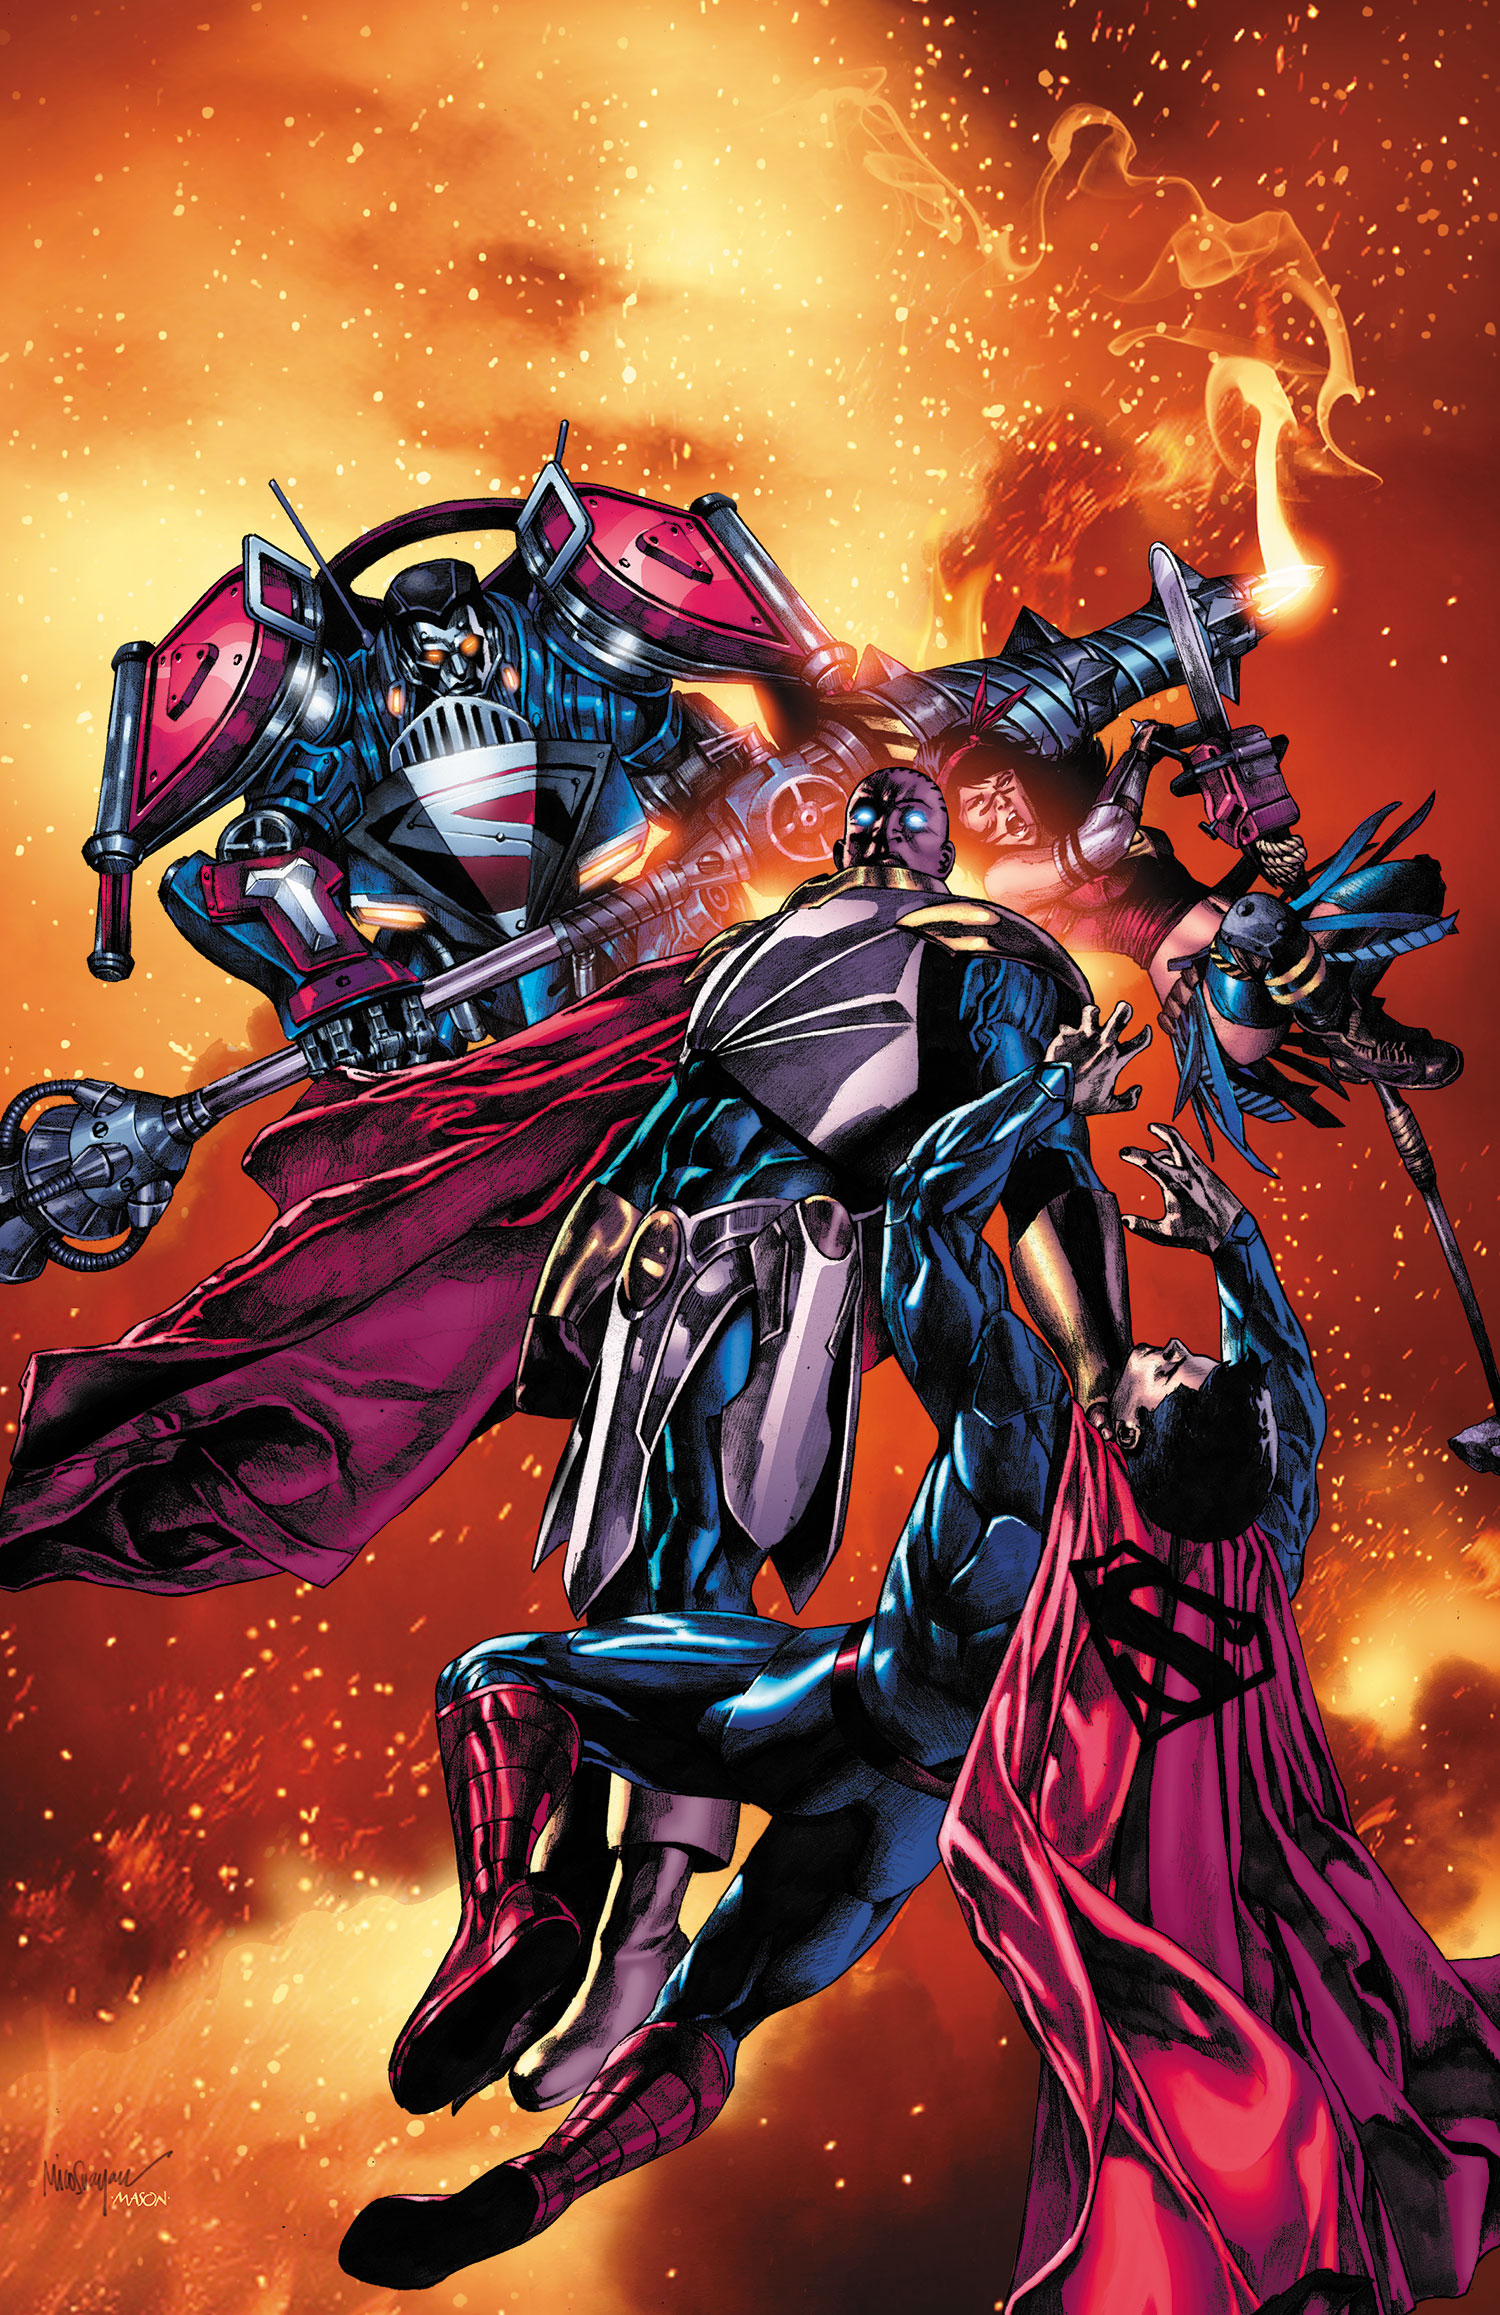 Infinite Crisis The Fight for the Multiverse Vol 1 11 Textless.jpg